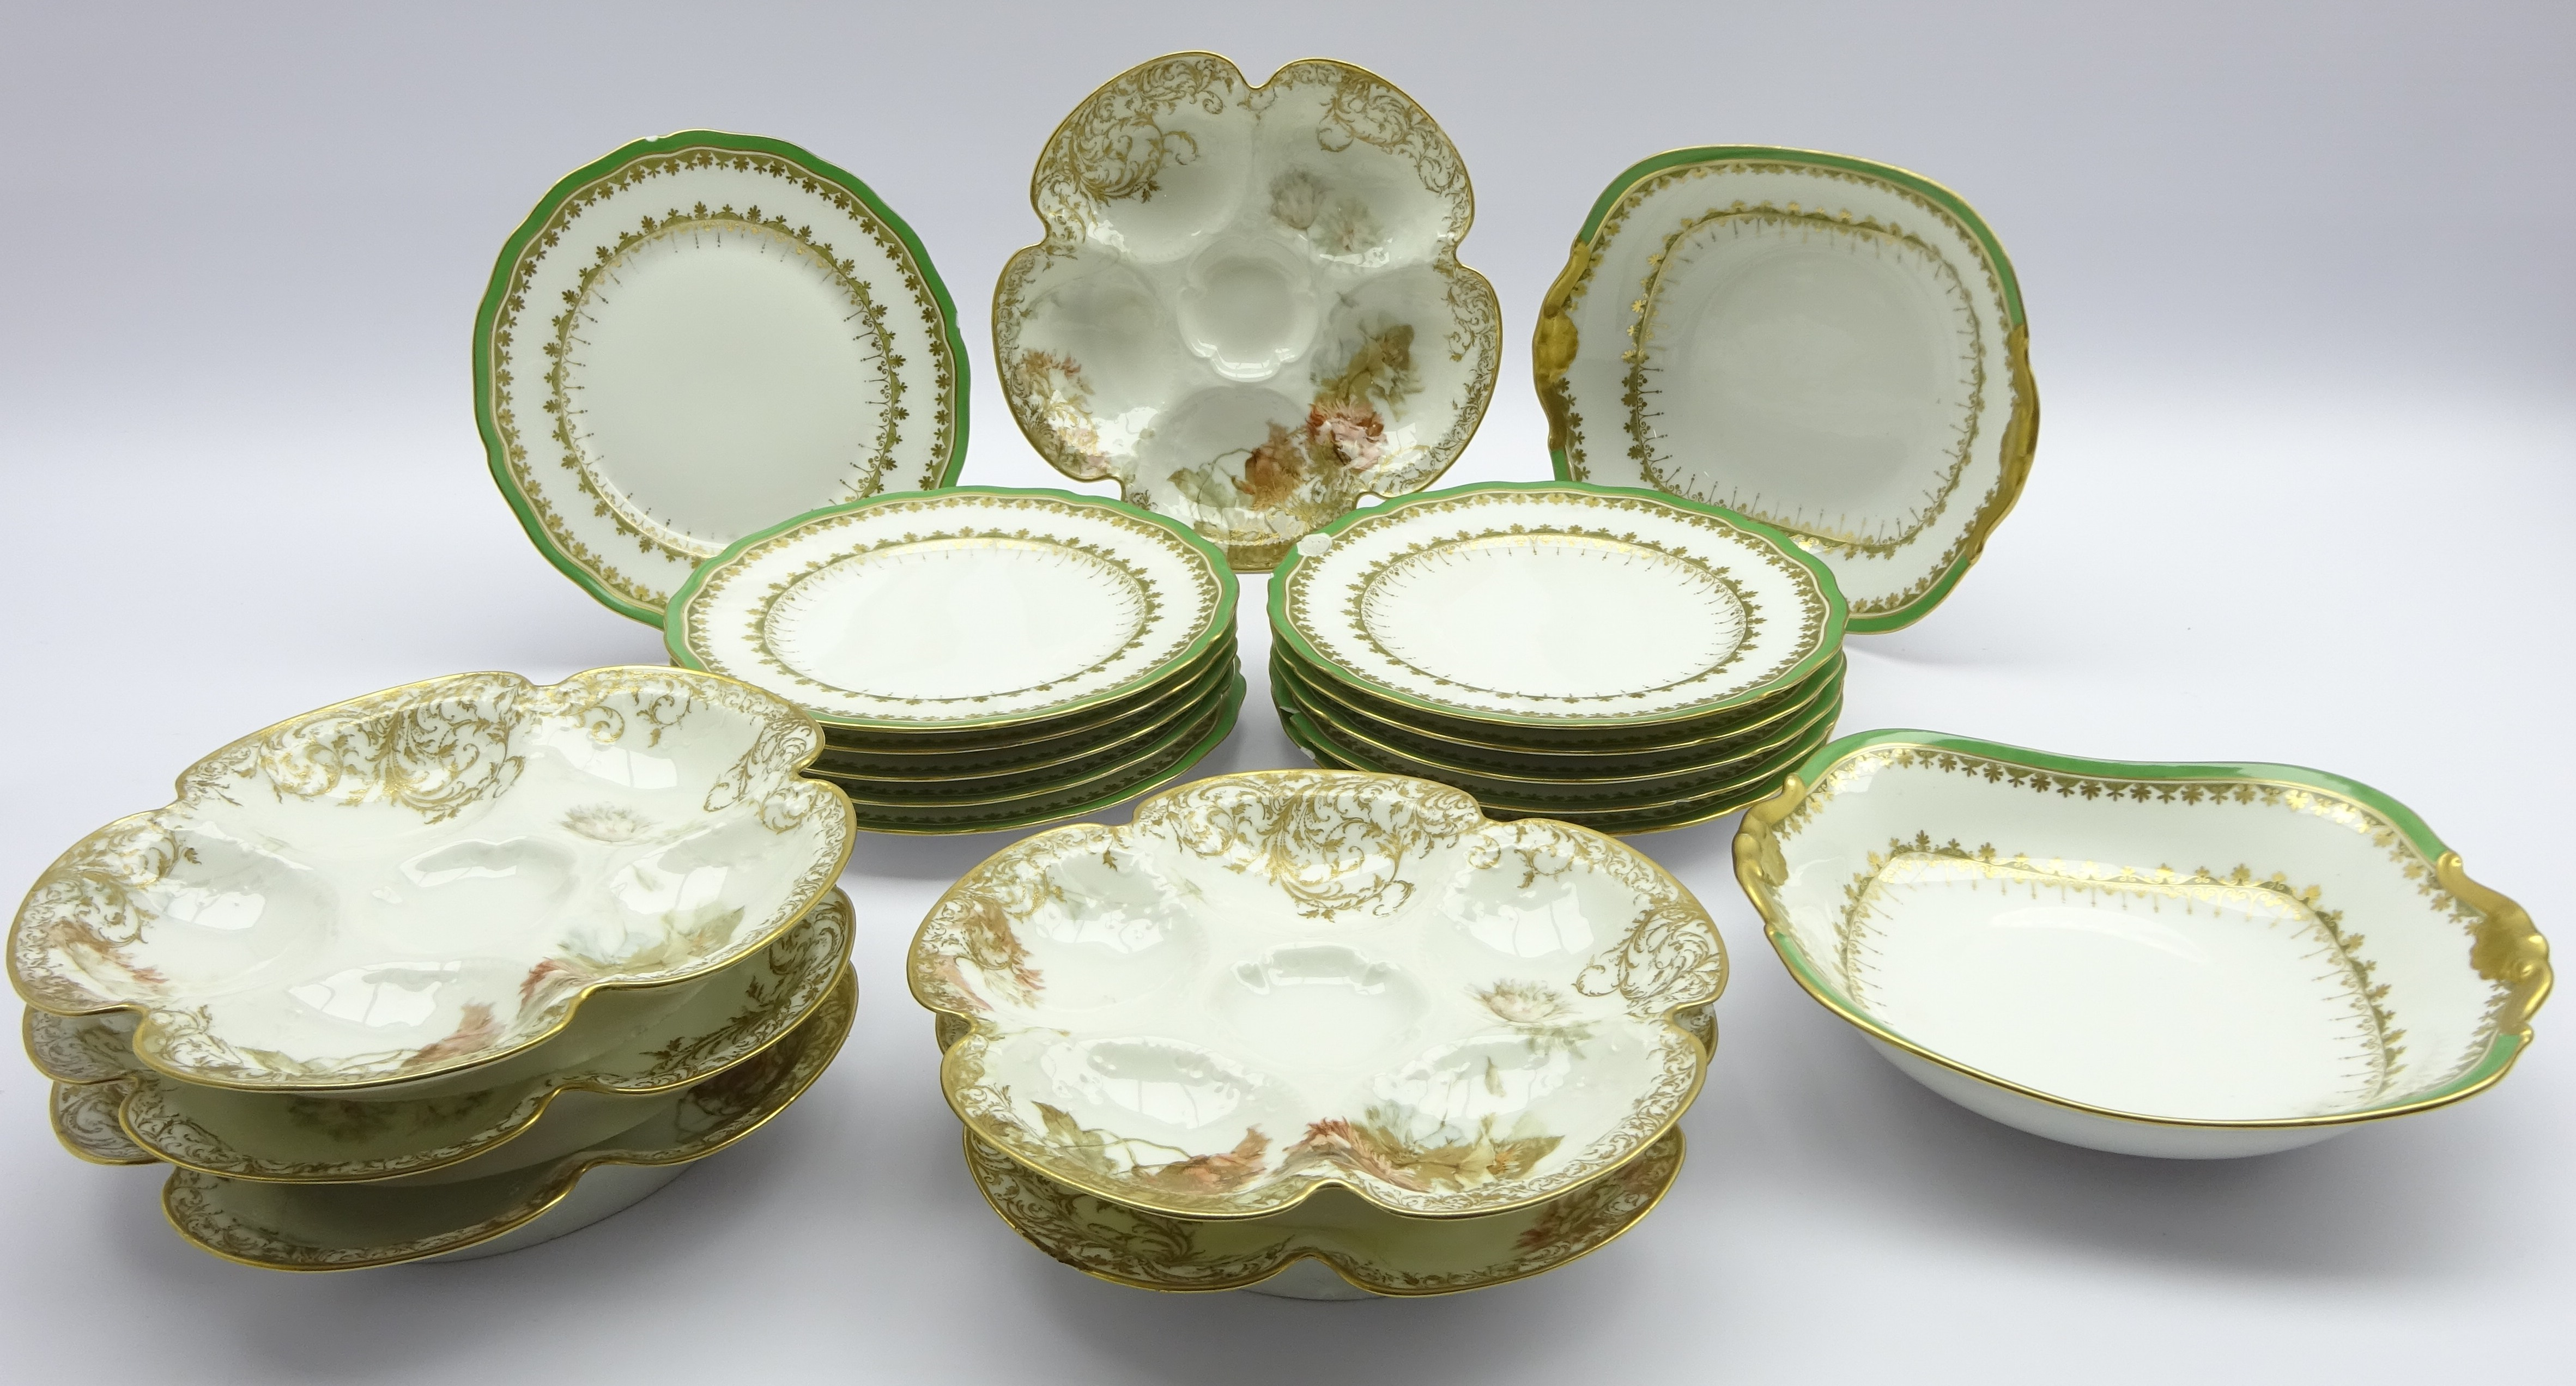 Lot 35 - Set of six Limoges Oyster plates, for J.E. Caldwell & Co.